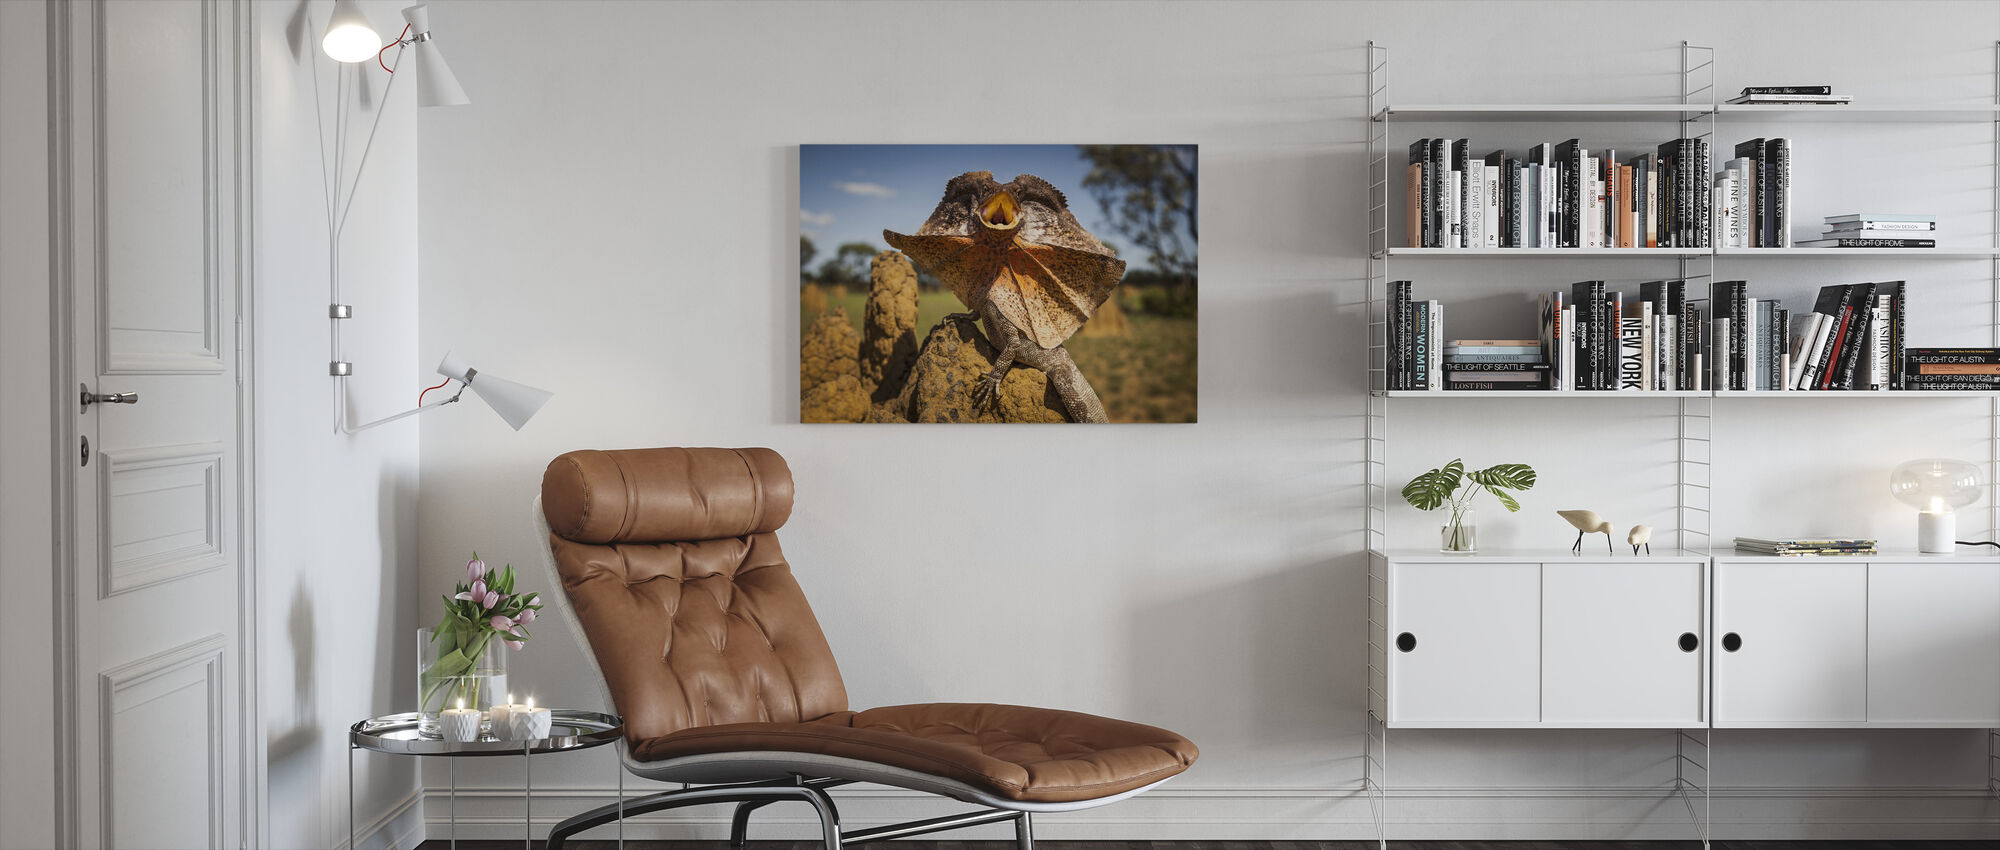 Frill Neck Lizard - Canvas print - Living Room